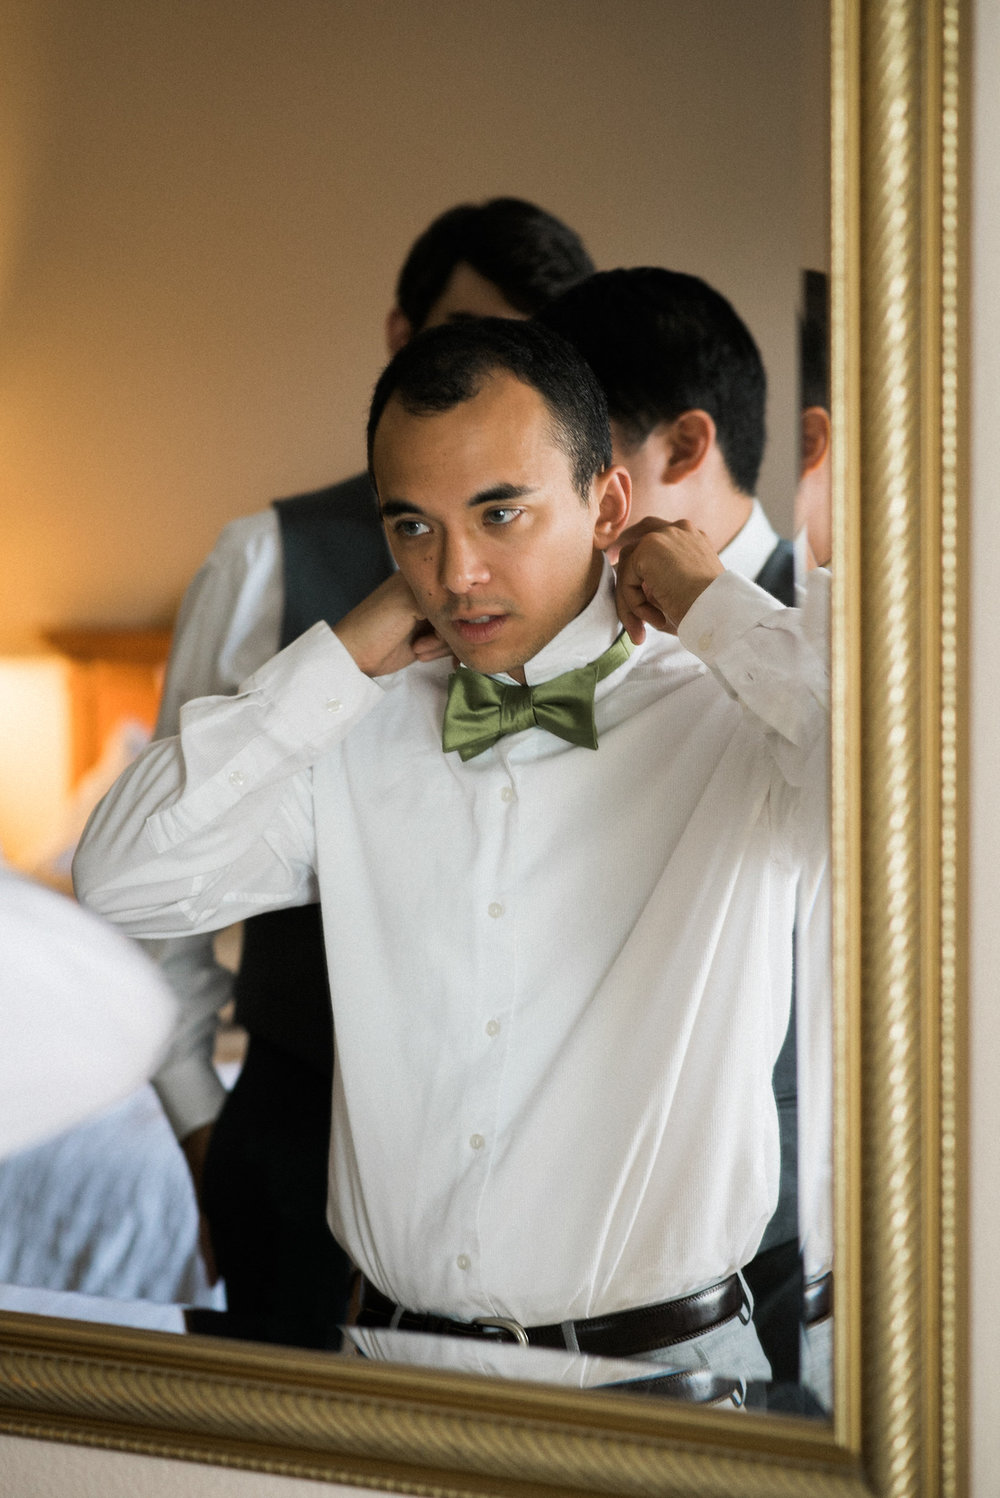 Groom ties bowtie